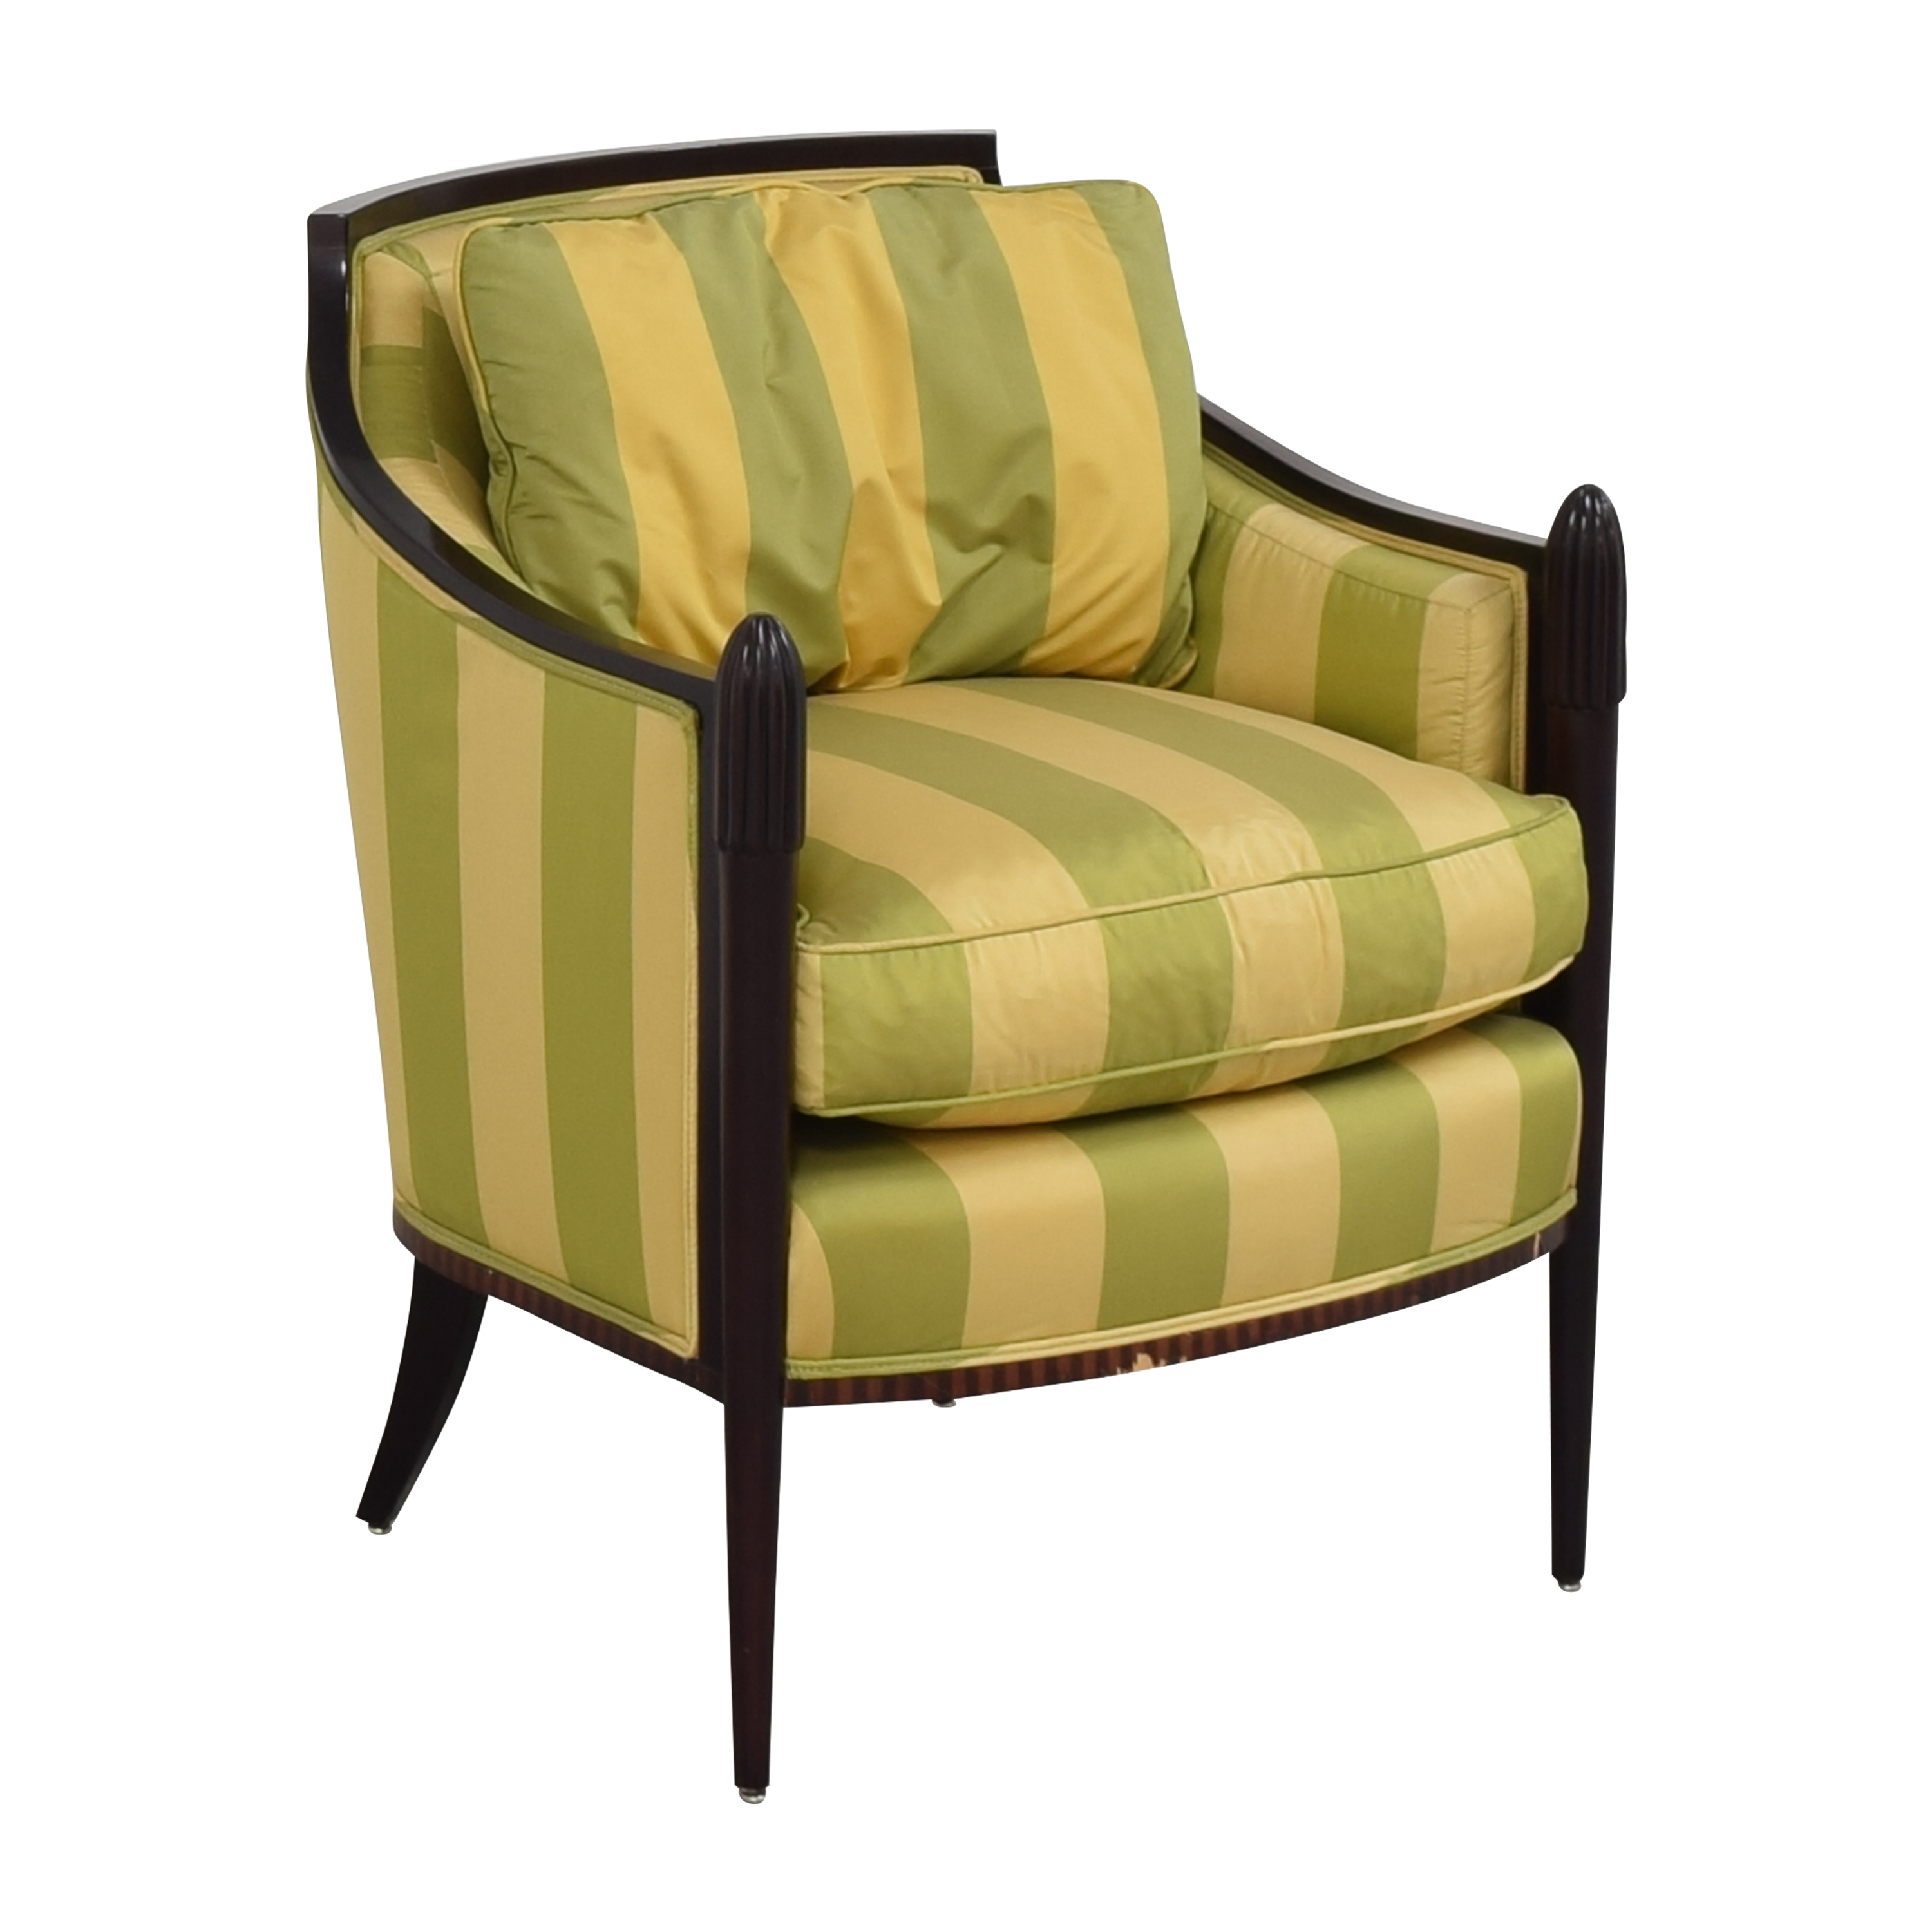 Baker Furniture Barbara Barry for Baker Furniture Deco Classic Lounge Chair ma